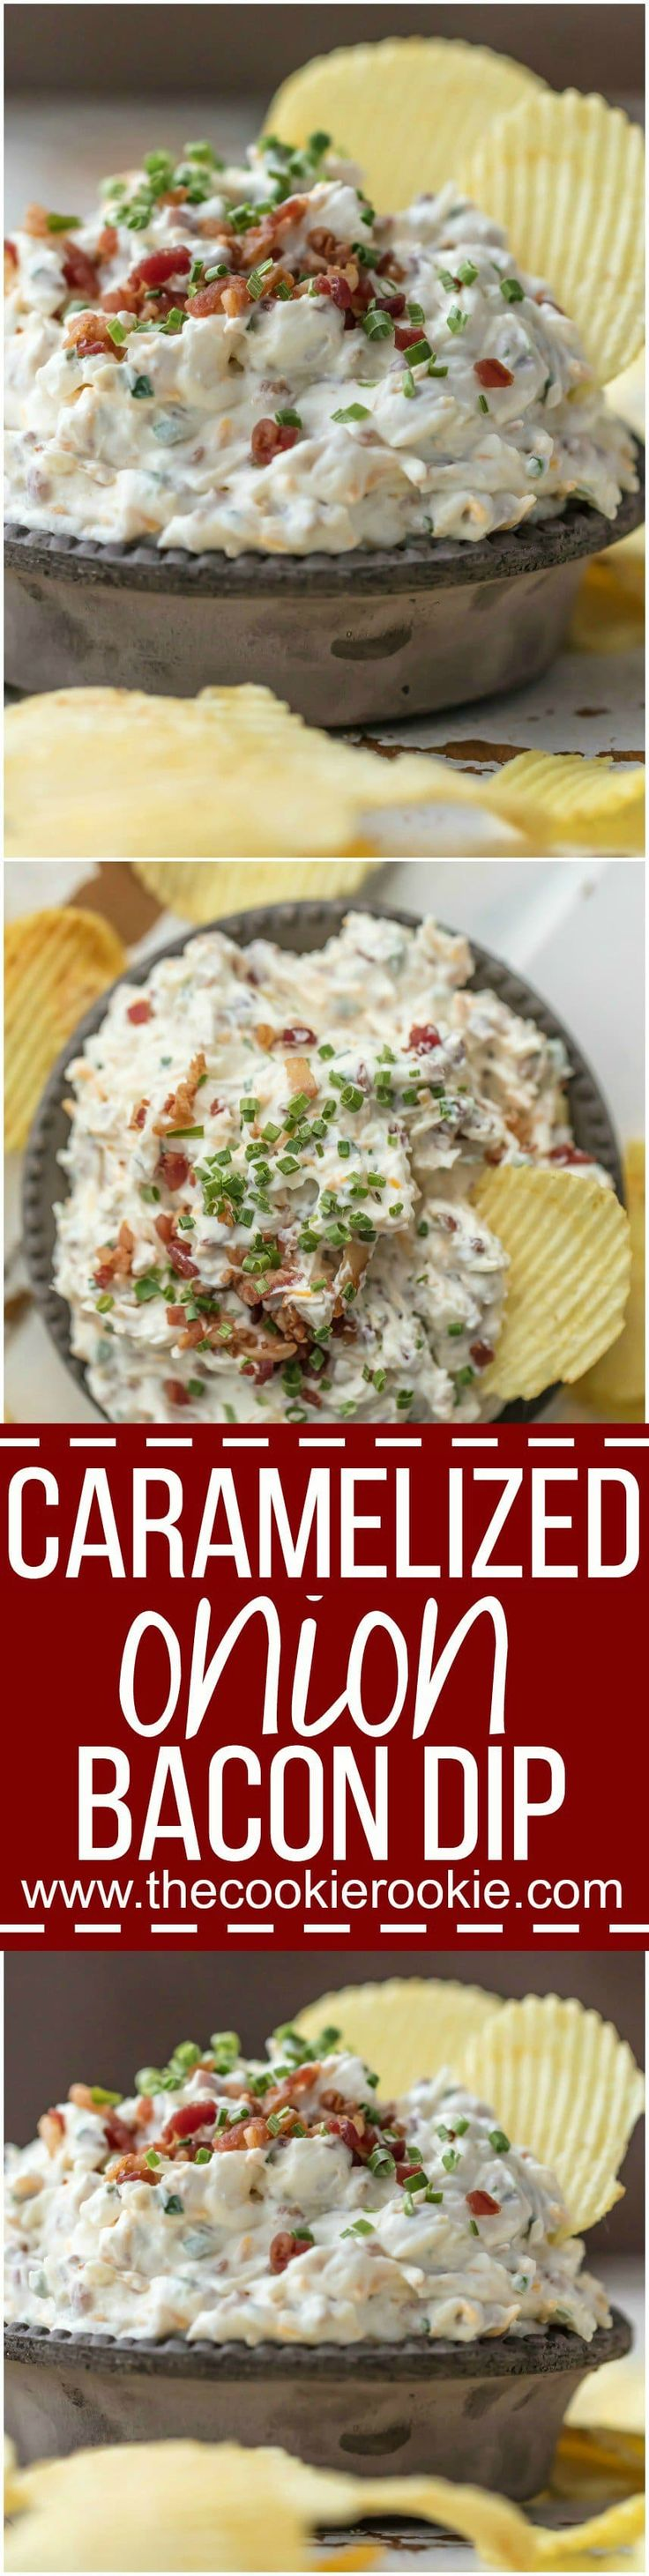 This CARAMELIZED ONION BACON DIP is the ultimate super easy appetizer to make for game day! This sour cream dip is made in minutes and loved by all...so much flavor! via @beckygallhardin